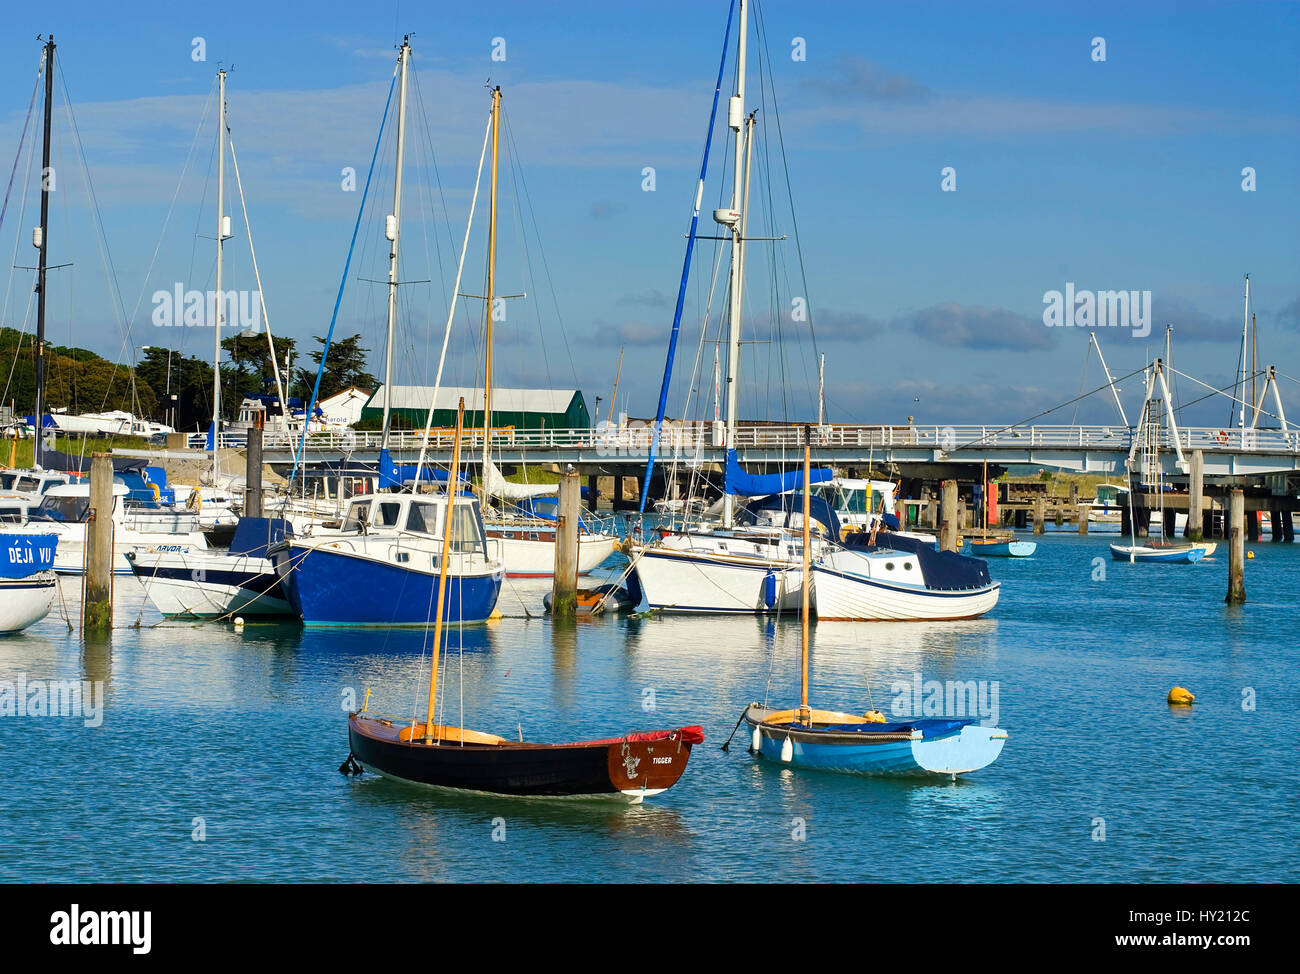 View over the Marina of Yarmouth, a popular beachside town at the Isle of Wight in South England.  Blick ueber die - Stock Image